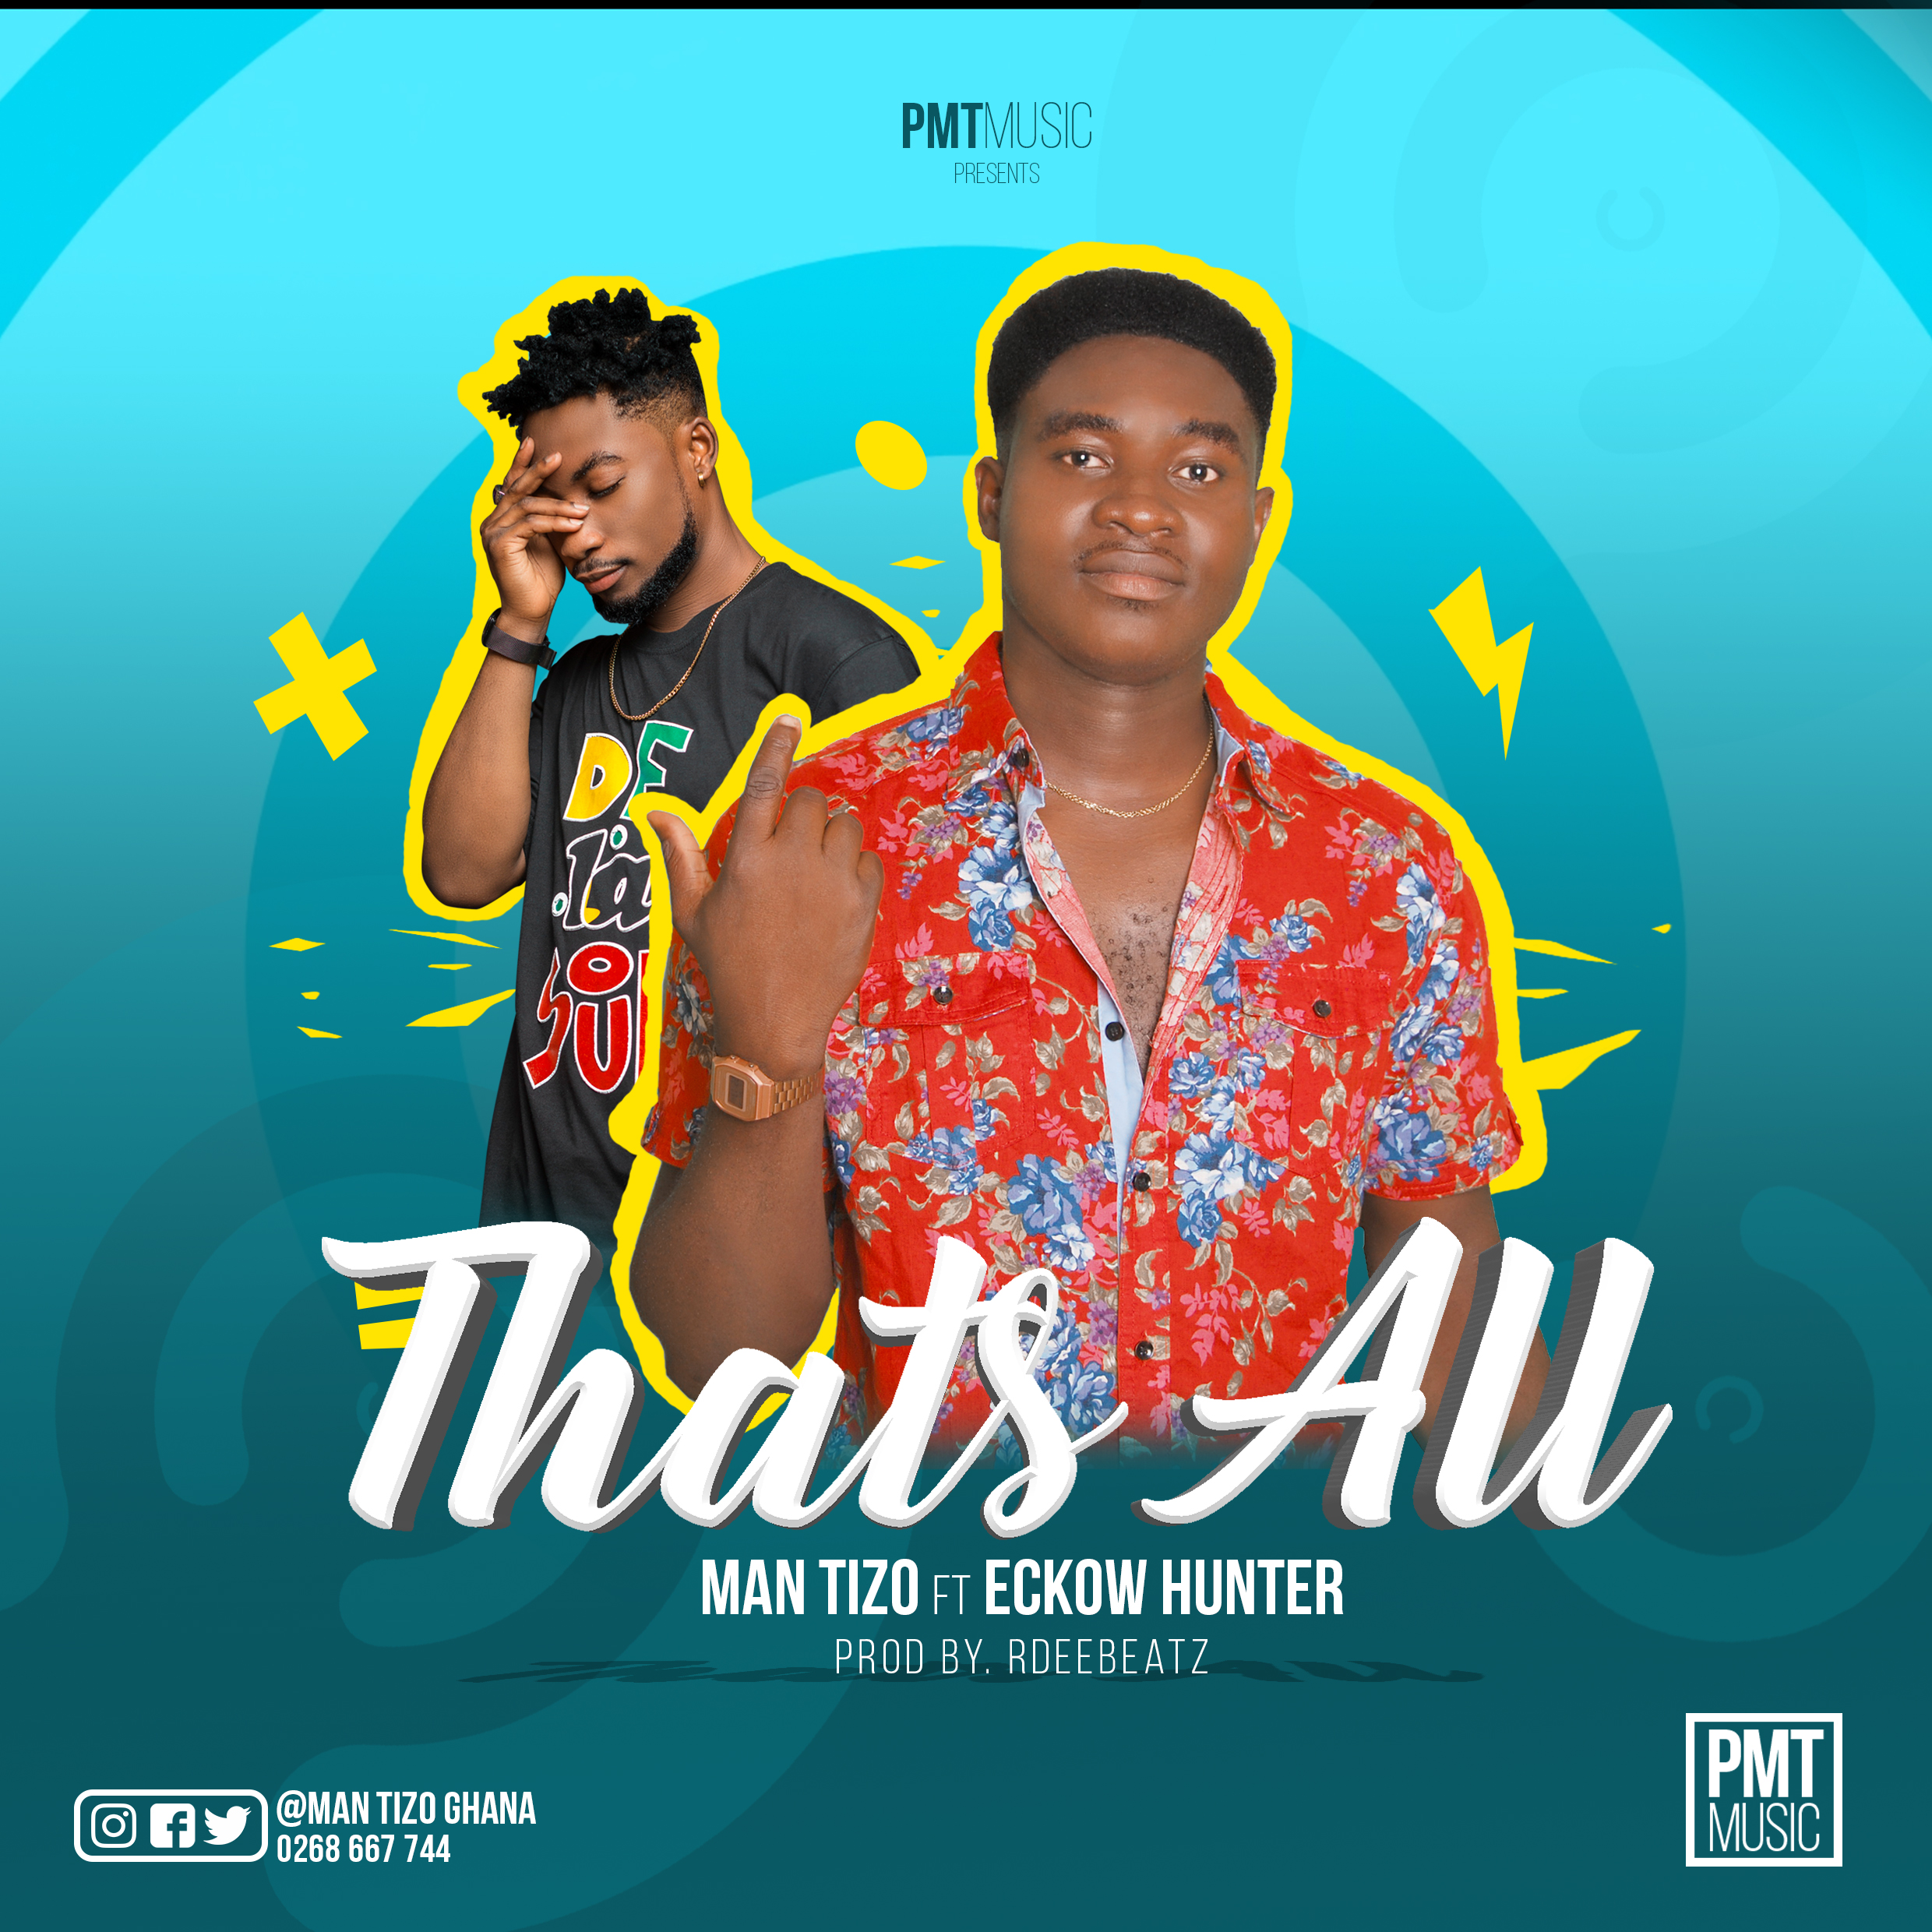 THATS ALL MP3(Man TIZO FT ECKOW HUNTER )Prod. Rdeebeatz